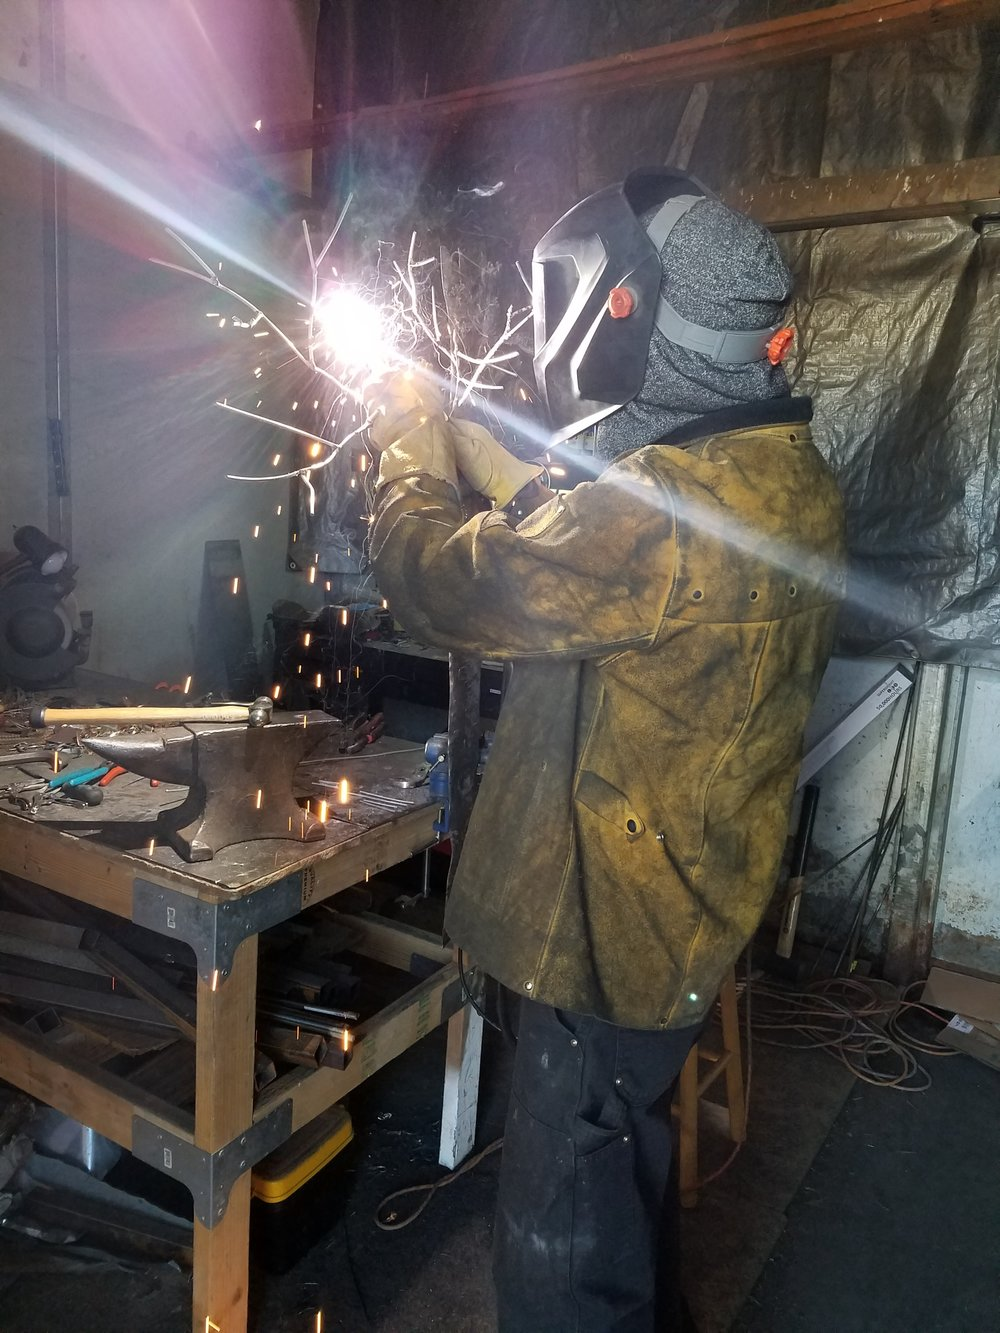 Wes welding in the barn studio, Gunnison, Colorado. 2017